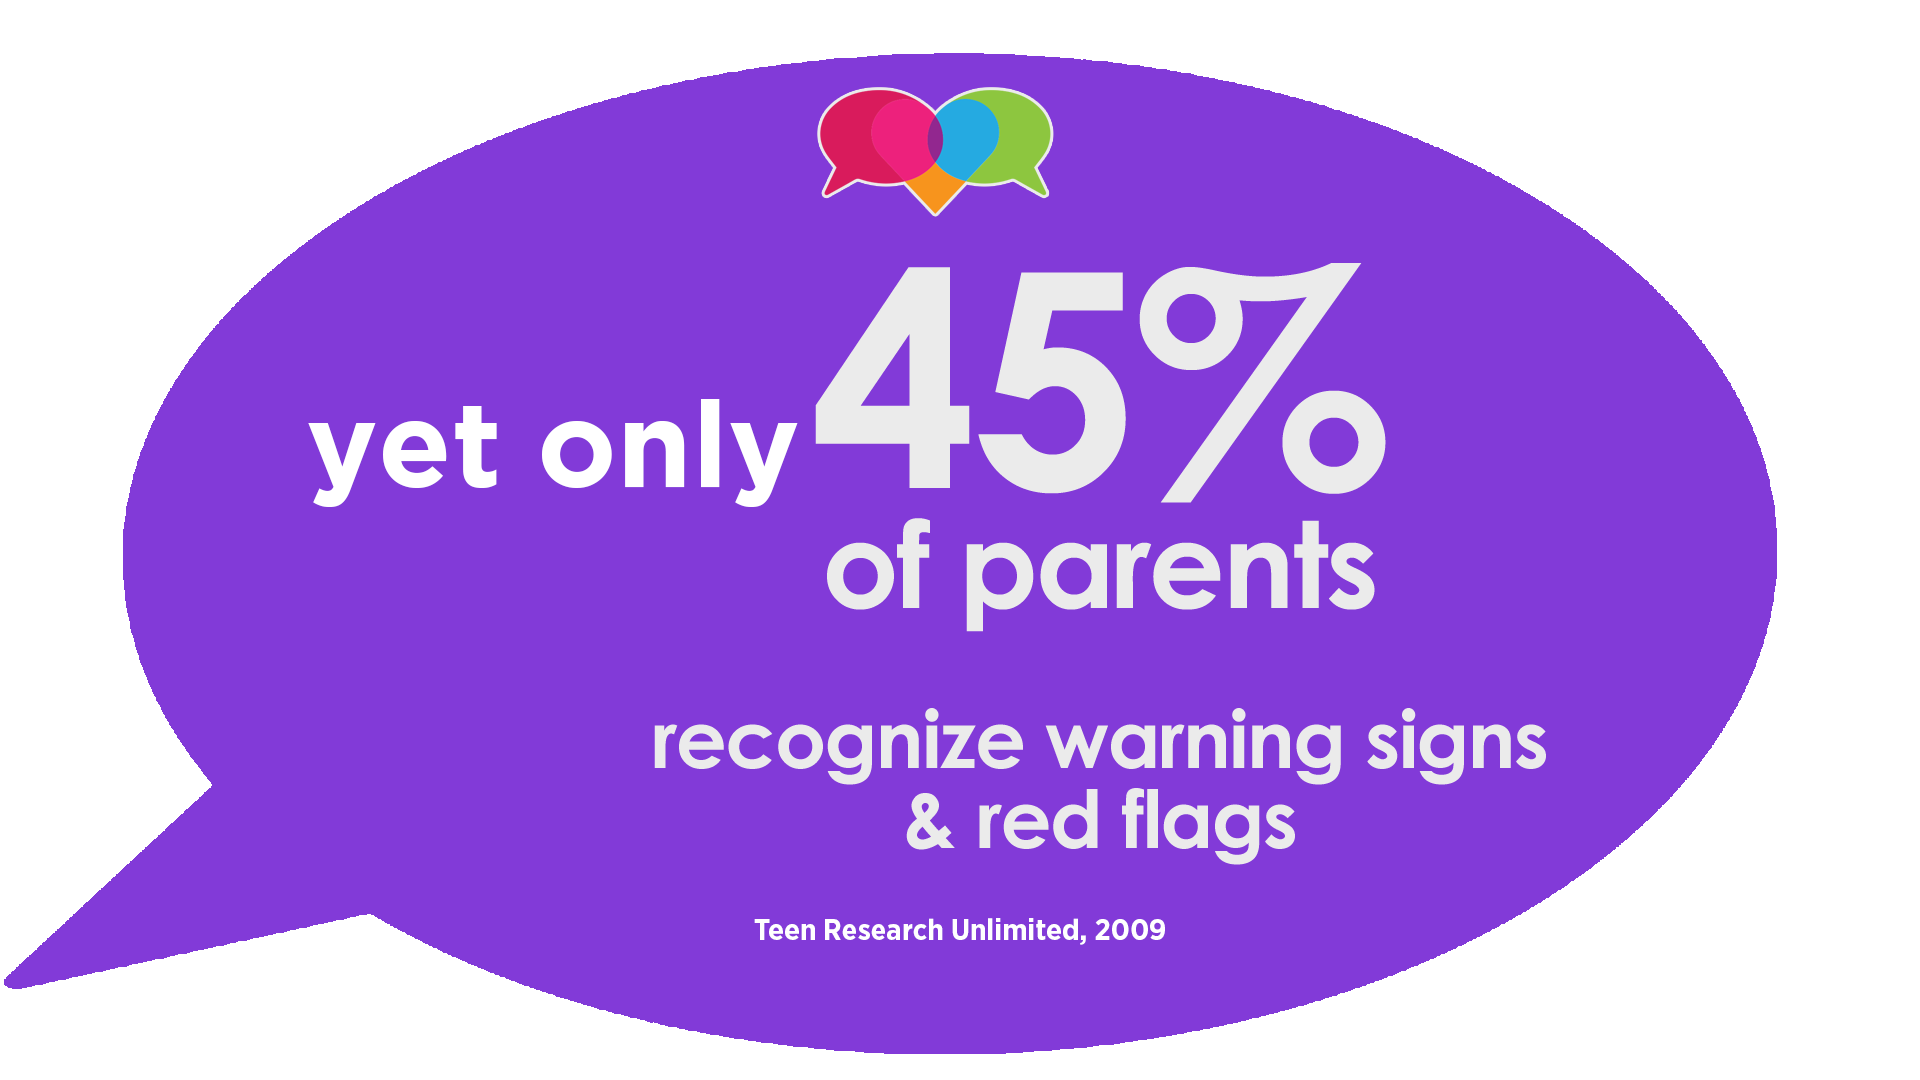 yet only 45% of parents recognize warning signs & red flags